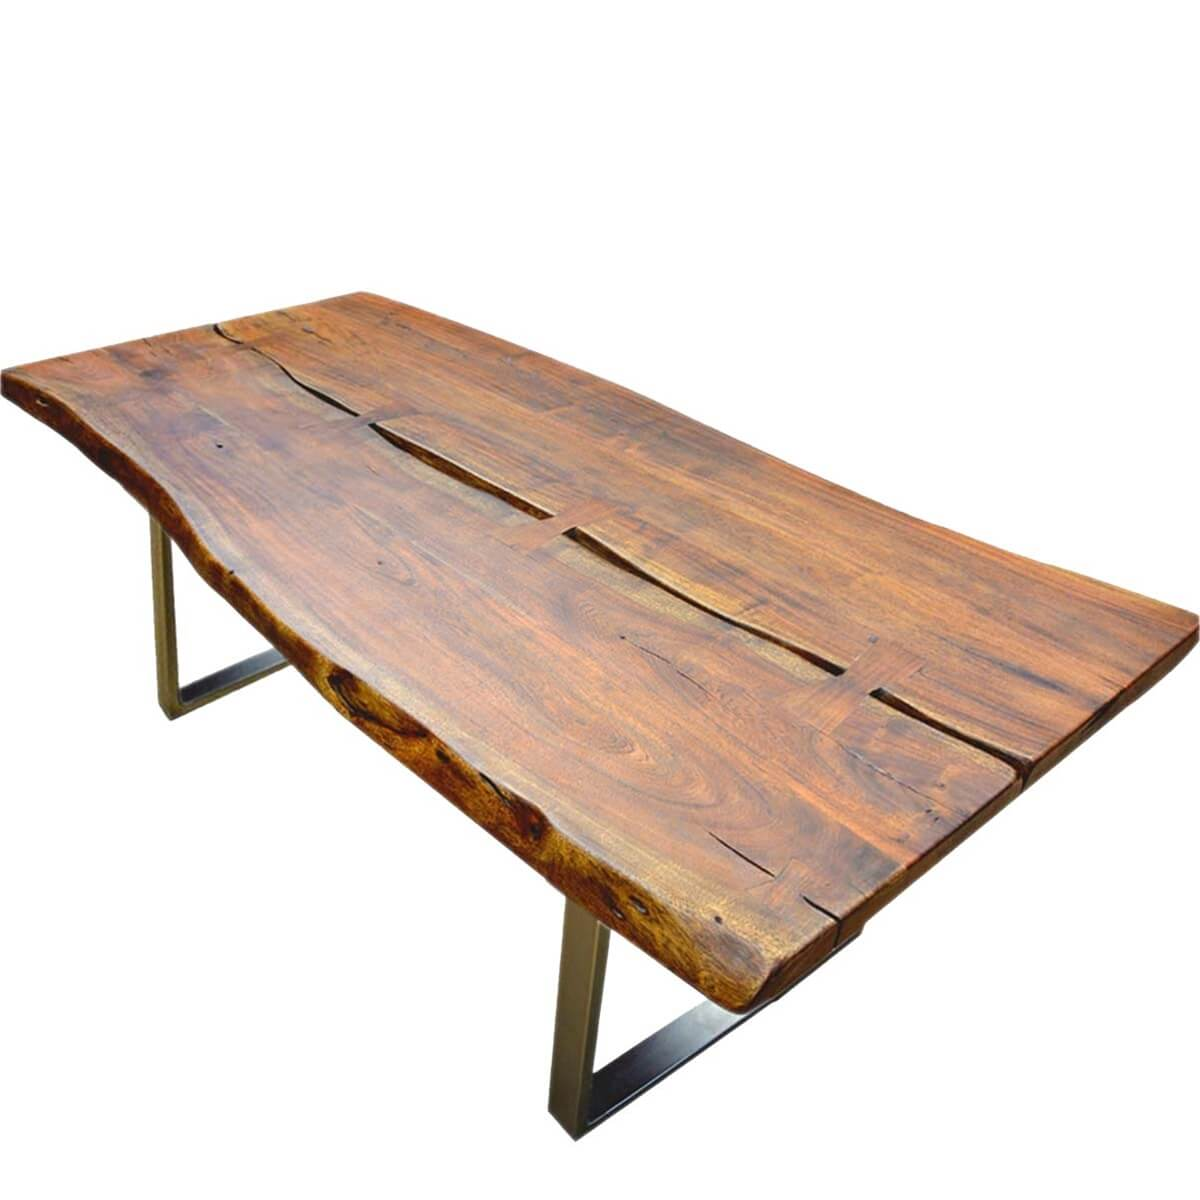 Live Edge Acacia Wood Iron Rustic Large Dining Table